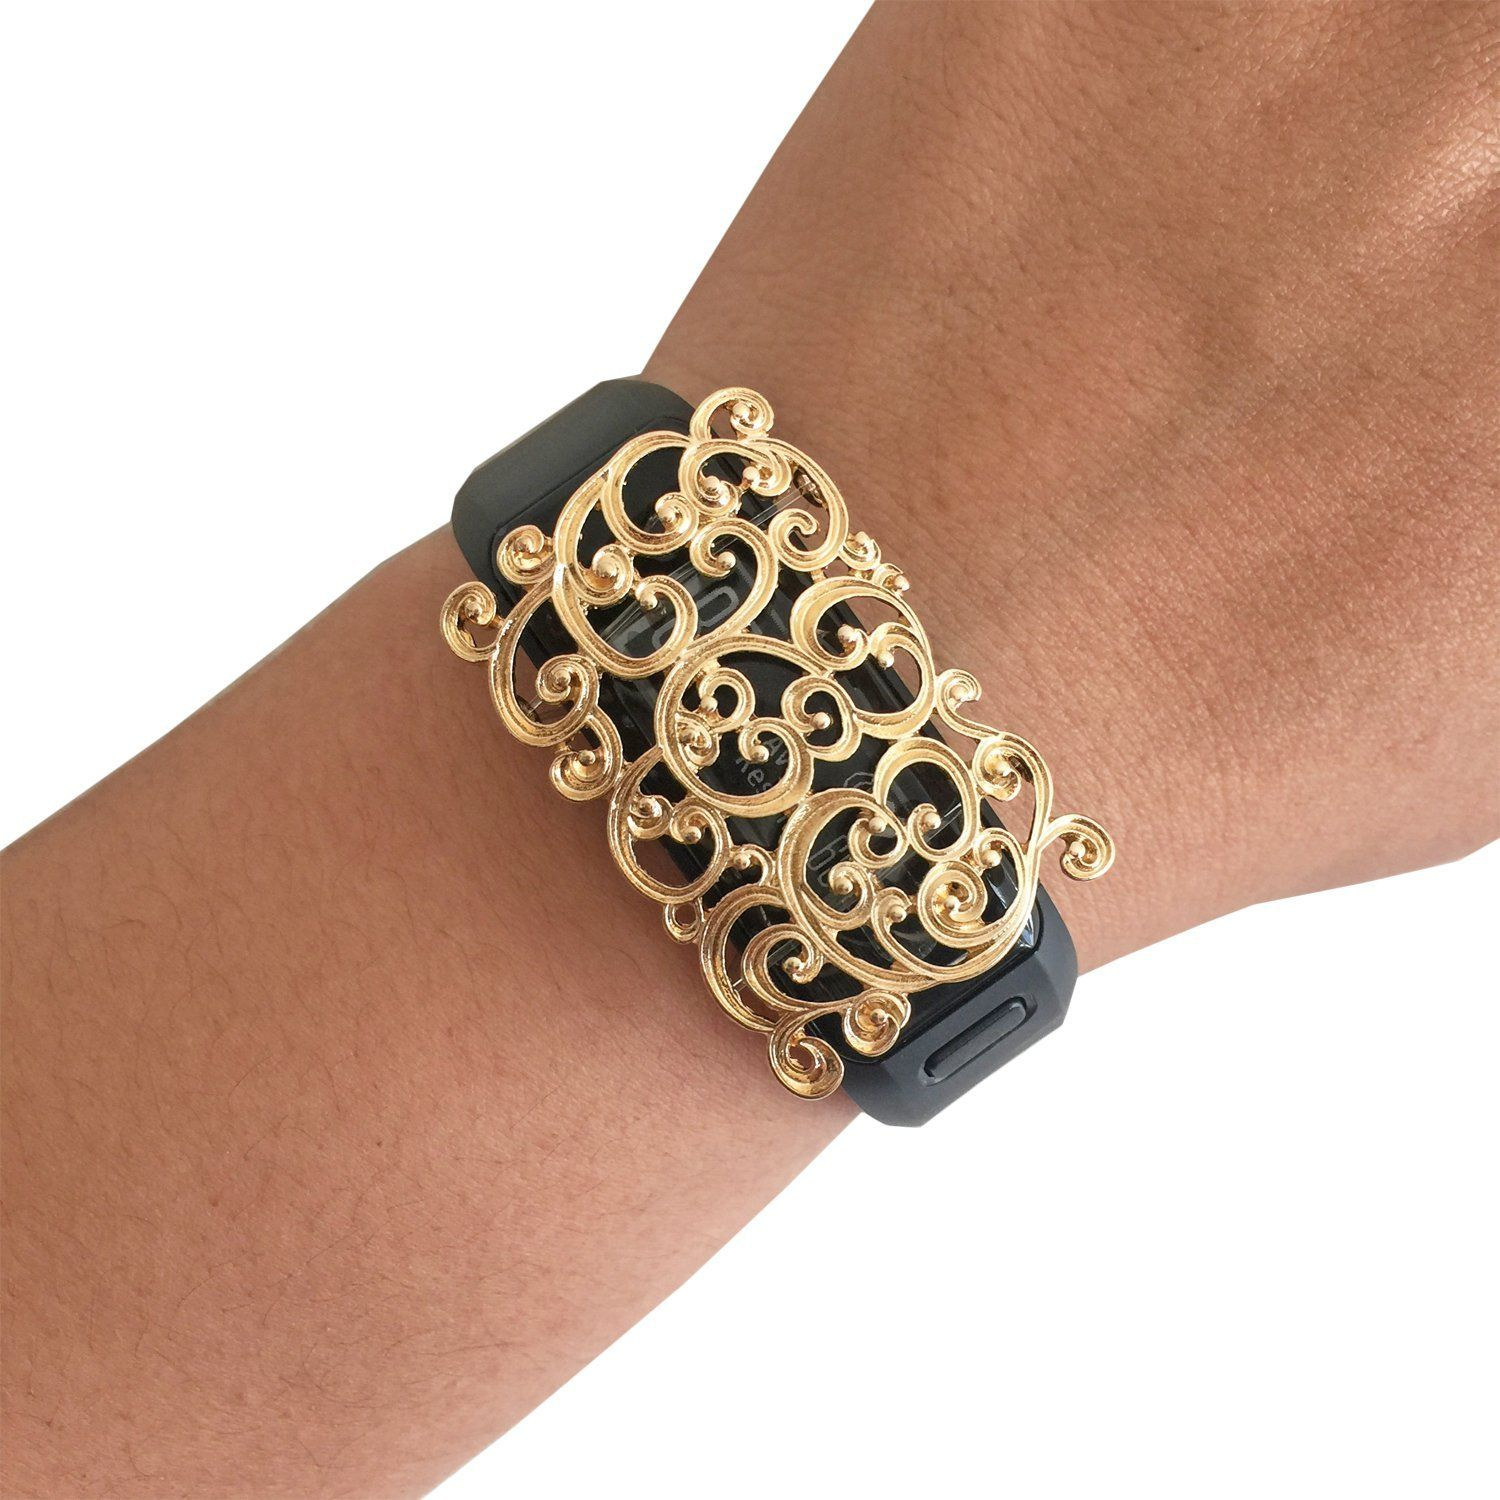 Charm to accessorize the fitbit charge charge hr and other fitness